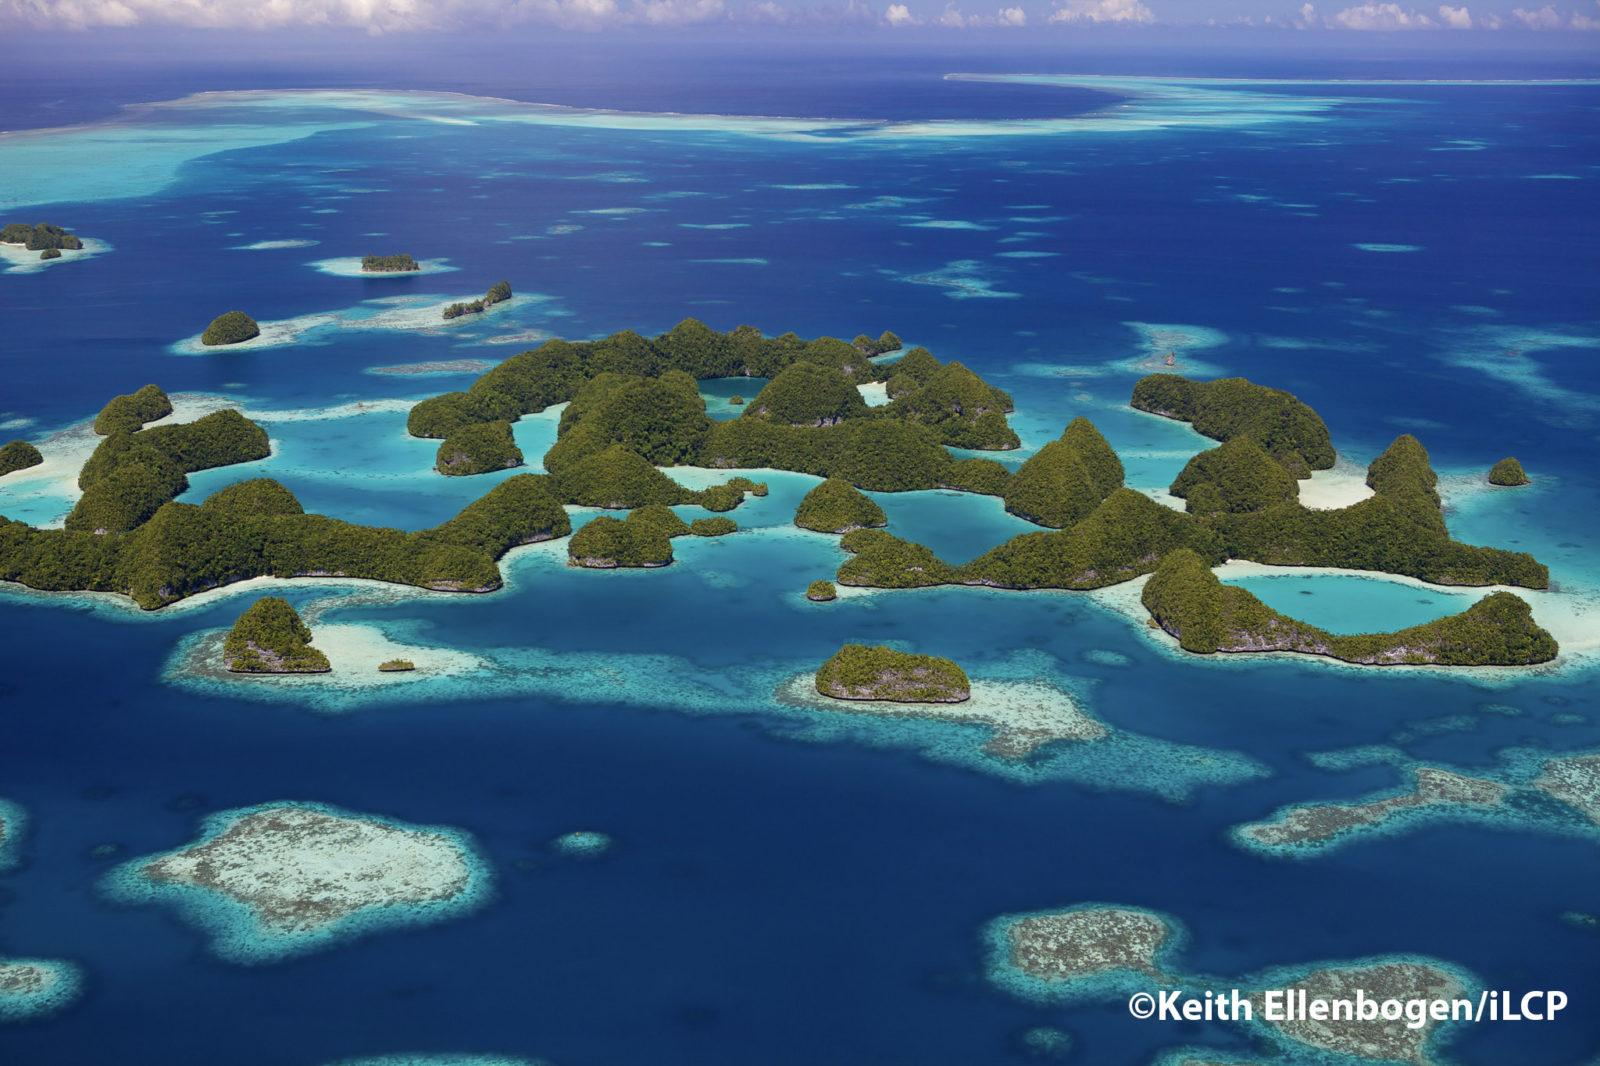 The Ngerukewid Islands or Seventy Islands are Palau's iconic island landscape symbolizing pristine beauty. The Seventy Islands (literally translated from Palau's name Ngerukuid meaning seventy). These islands are part of the Rock Islands an archipelago that includes approximately 250 to 300 islands in the group. The Islands were in part formed from limestone of accent coral reefs and coral uprisings. The Rock Islands are a World Heritage Site since 2012.